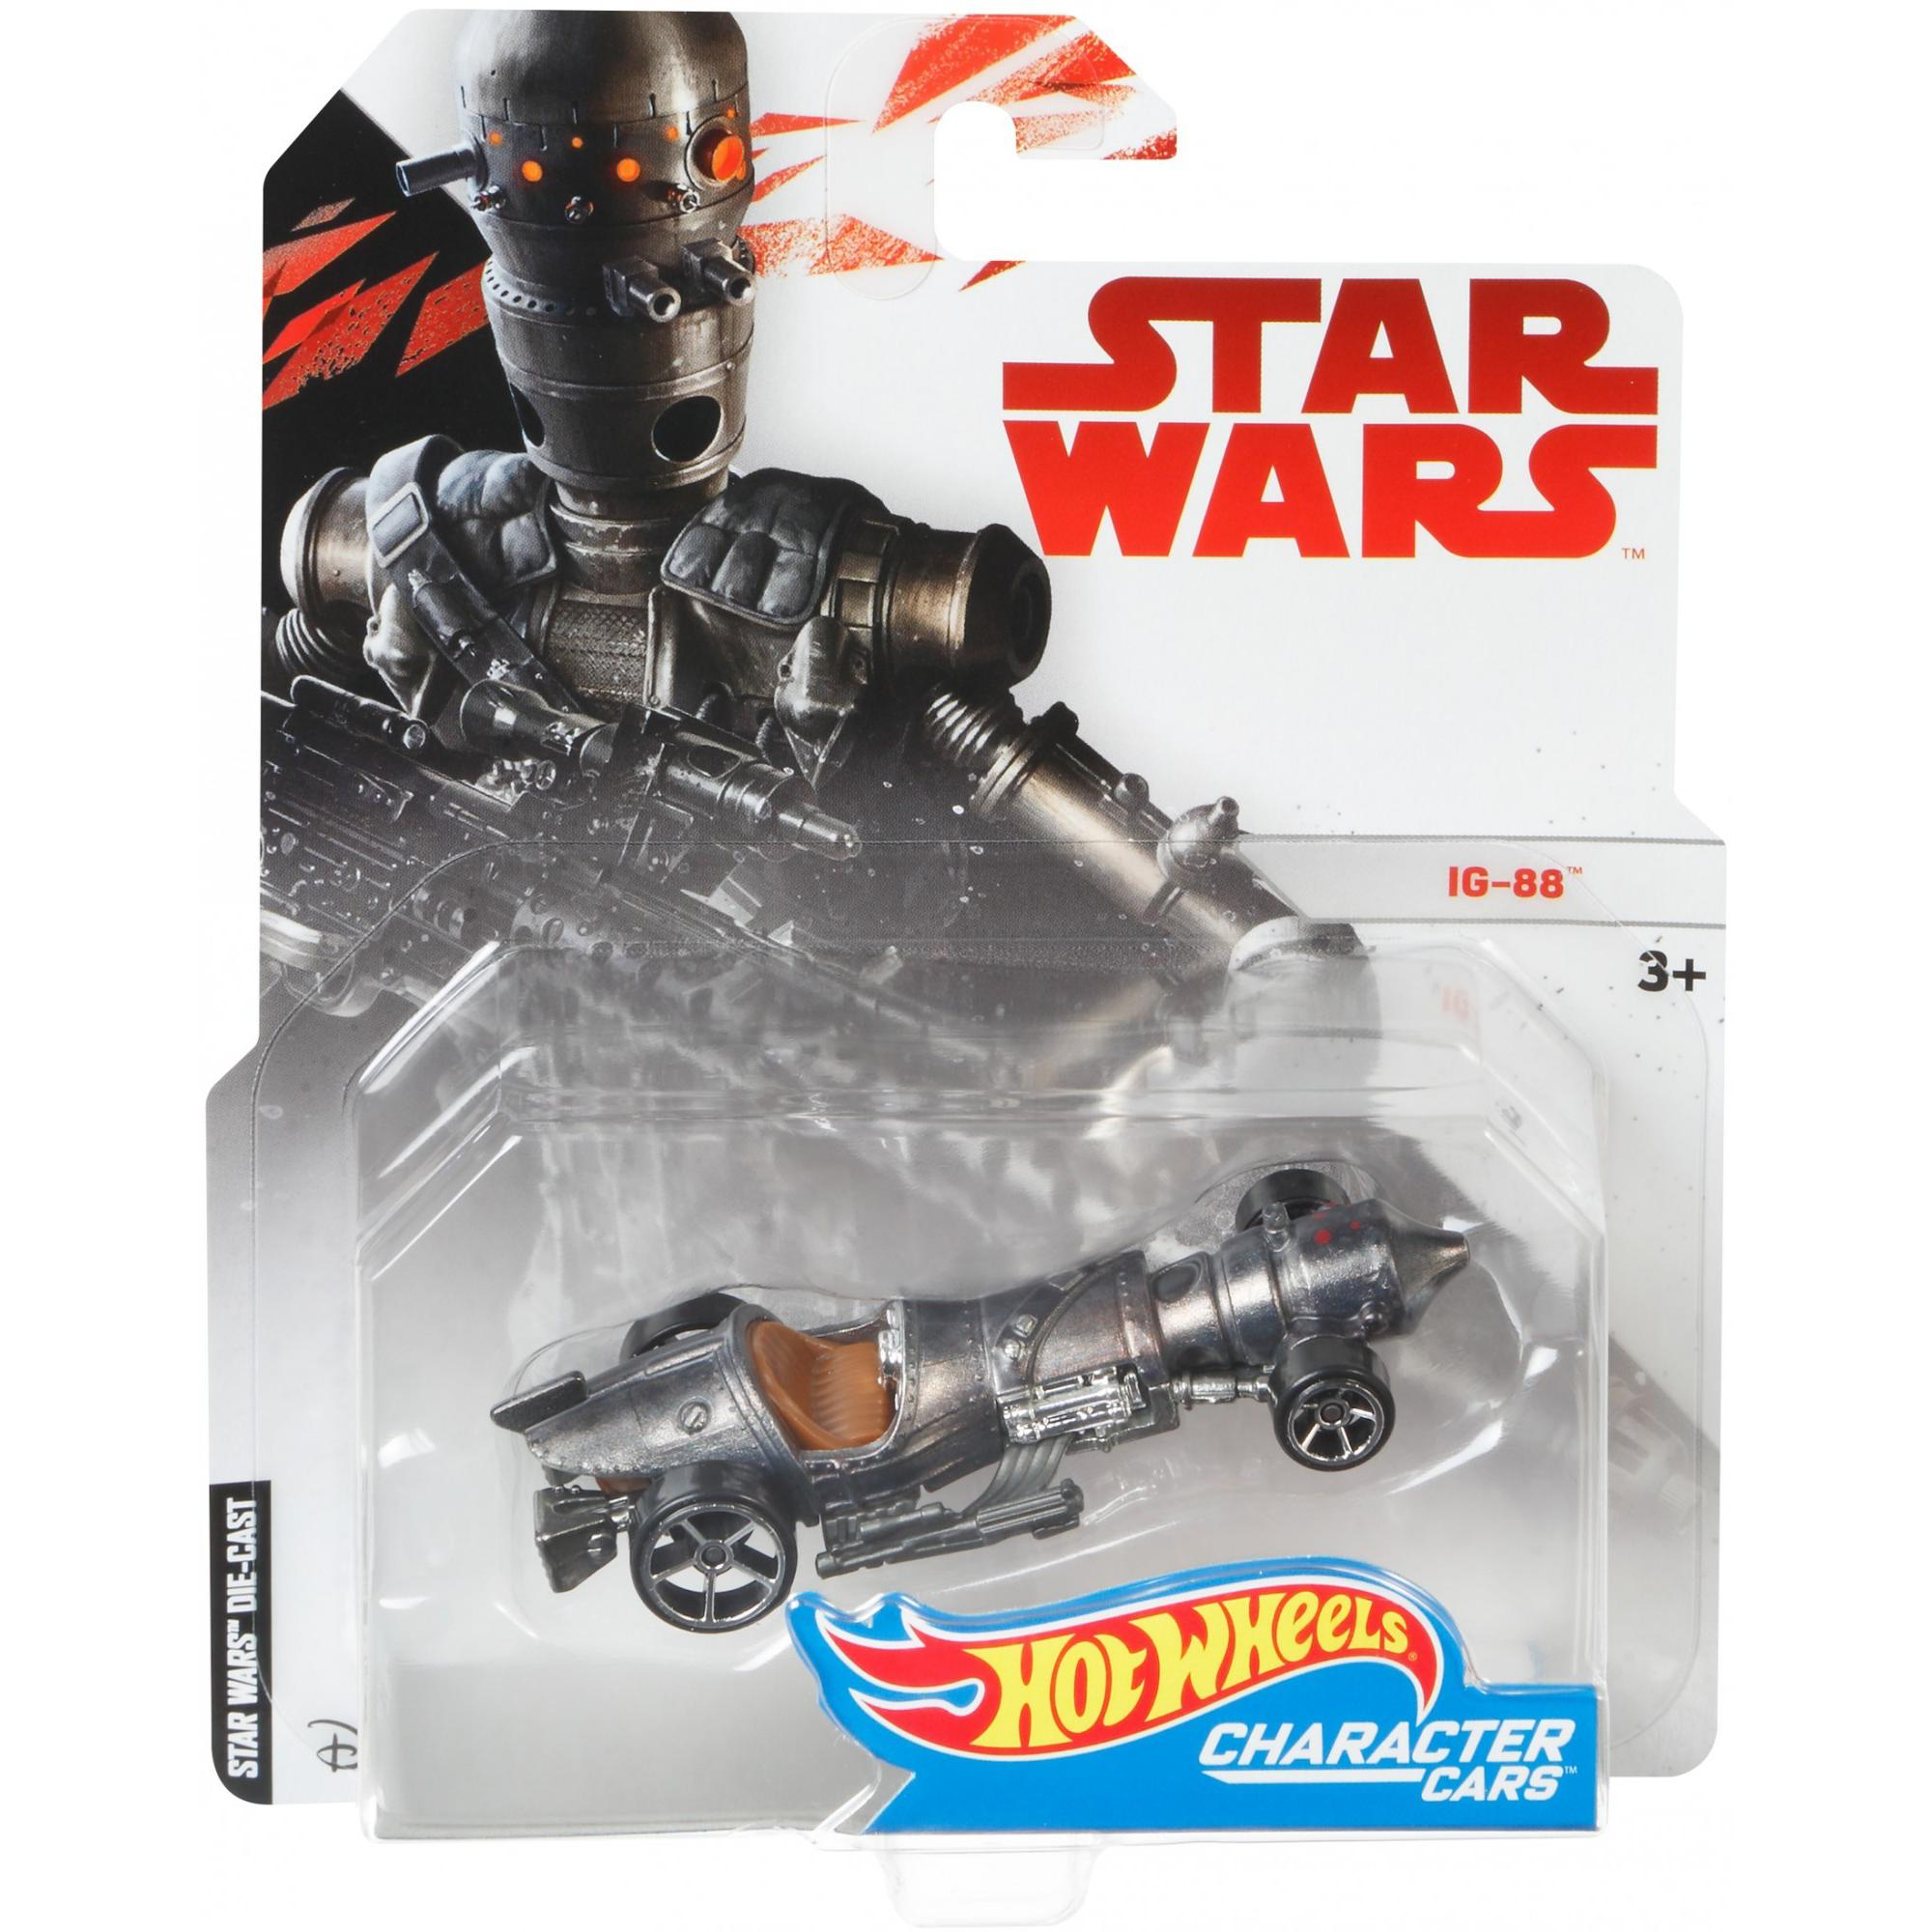 SW IG-88 HW Character Car Toy 1